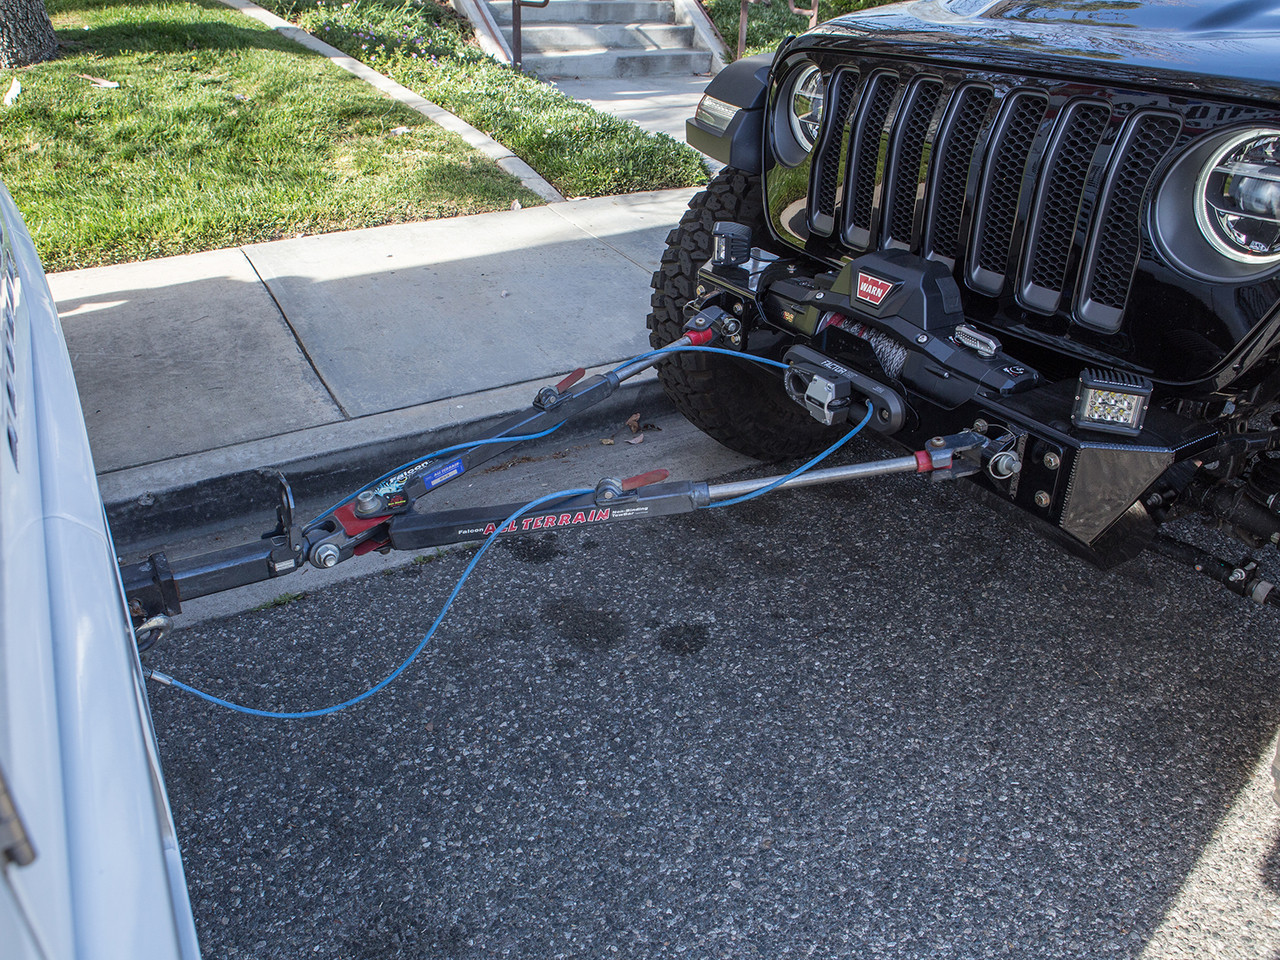 The heavy duty steel tow points allow you to flat tow your Jeep